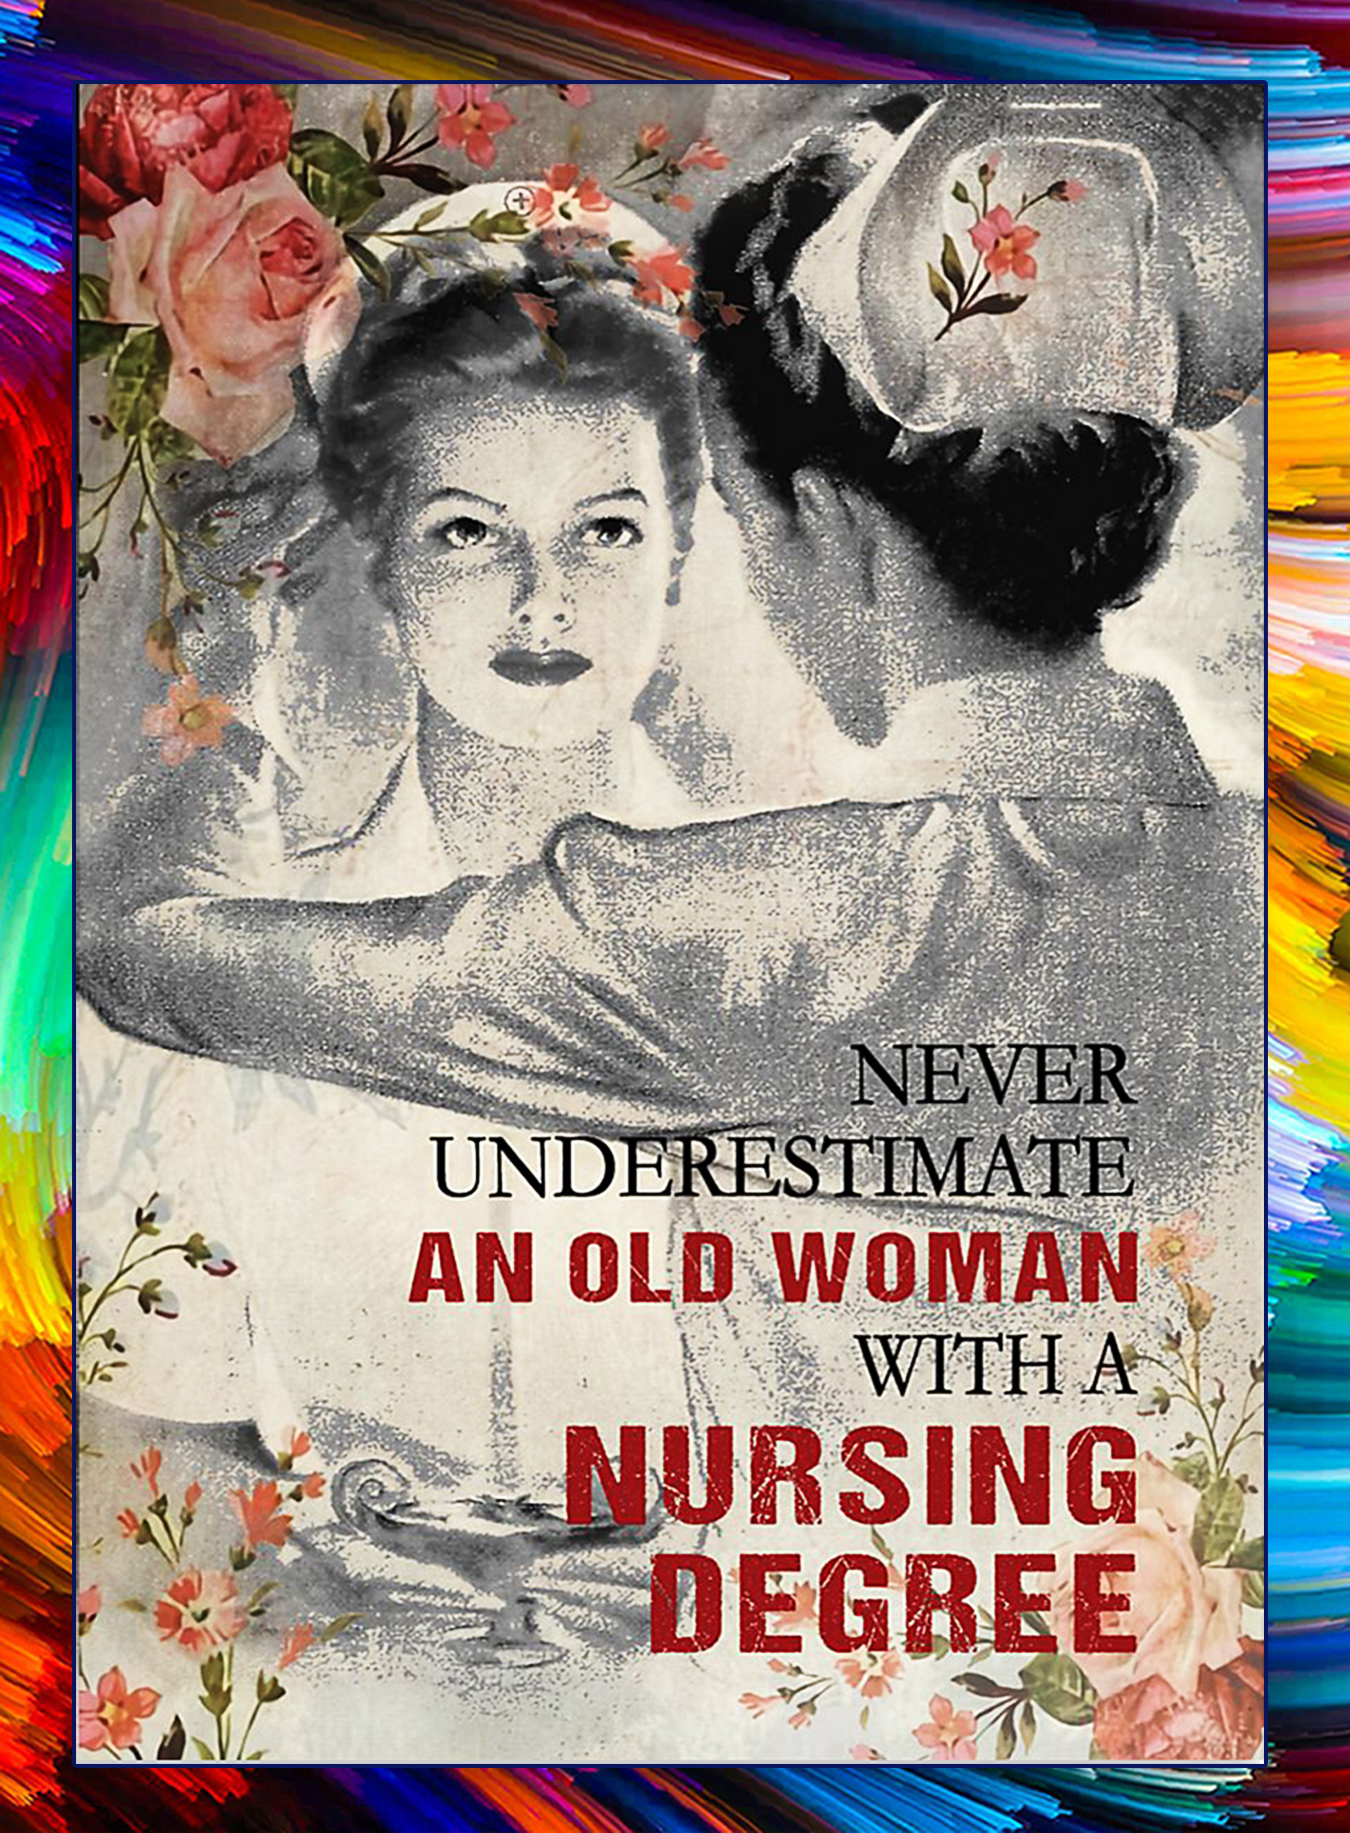 Never underestimate an old woman with a nursing degree poster - A3